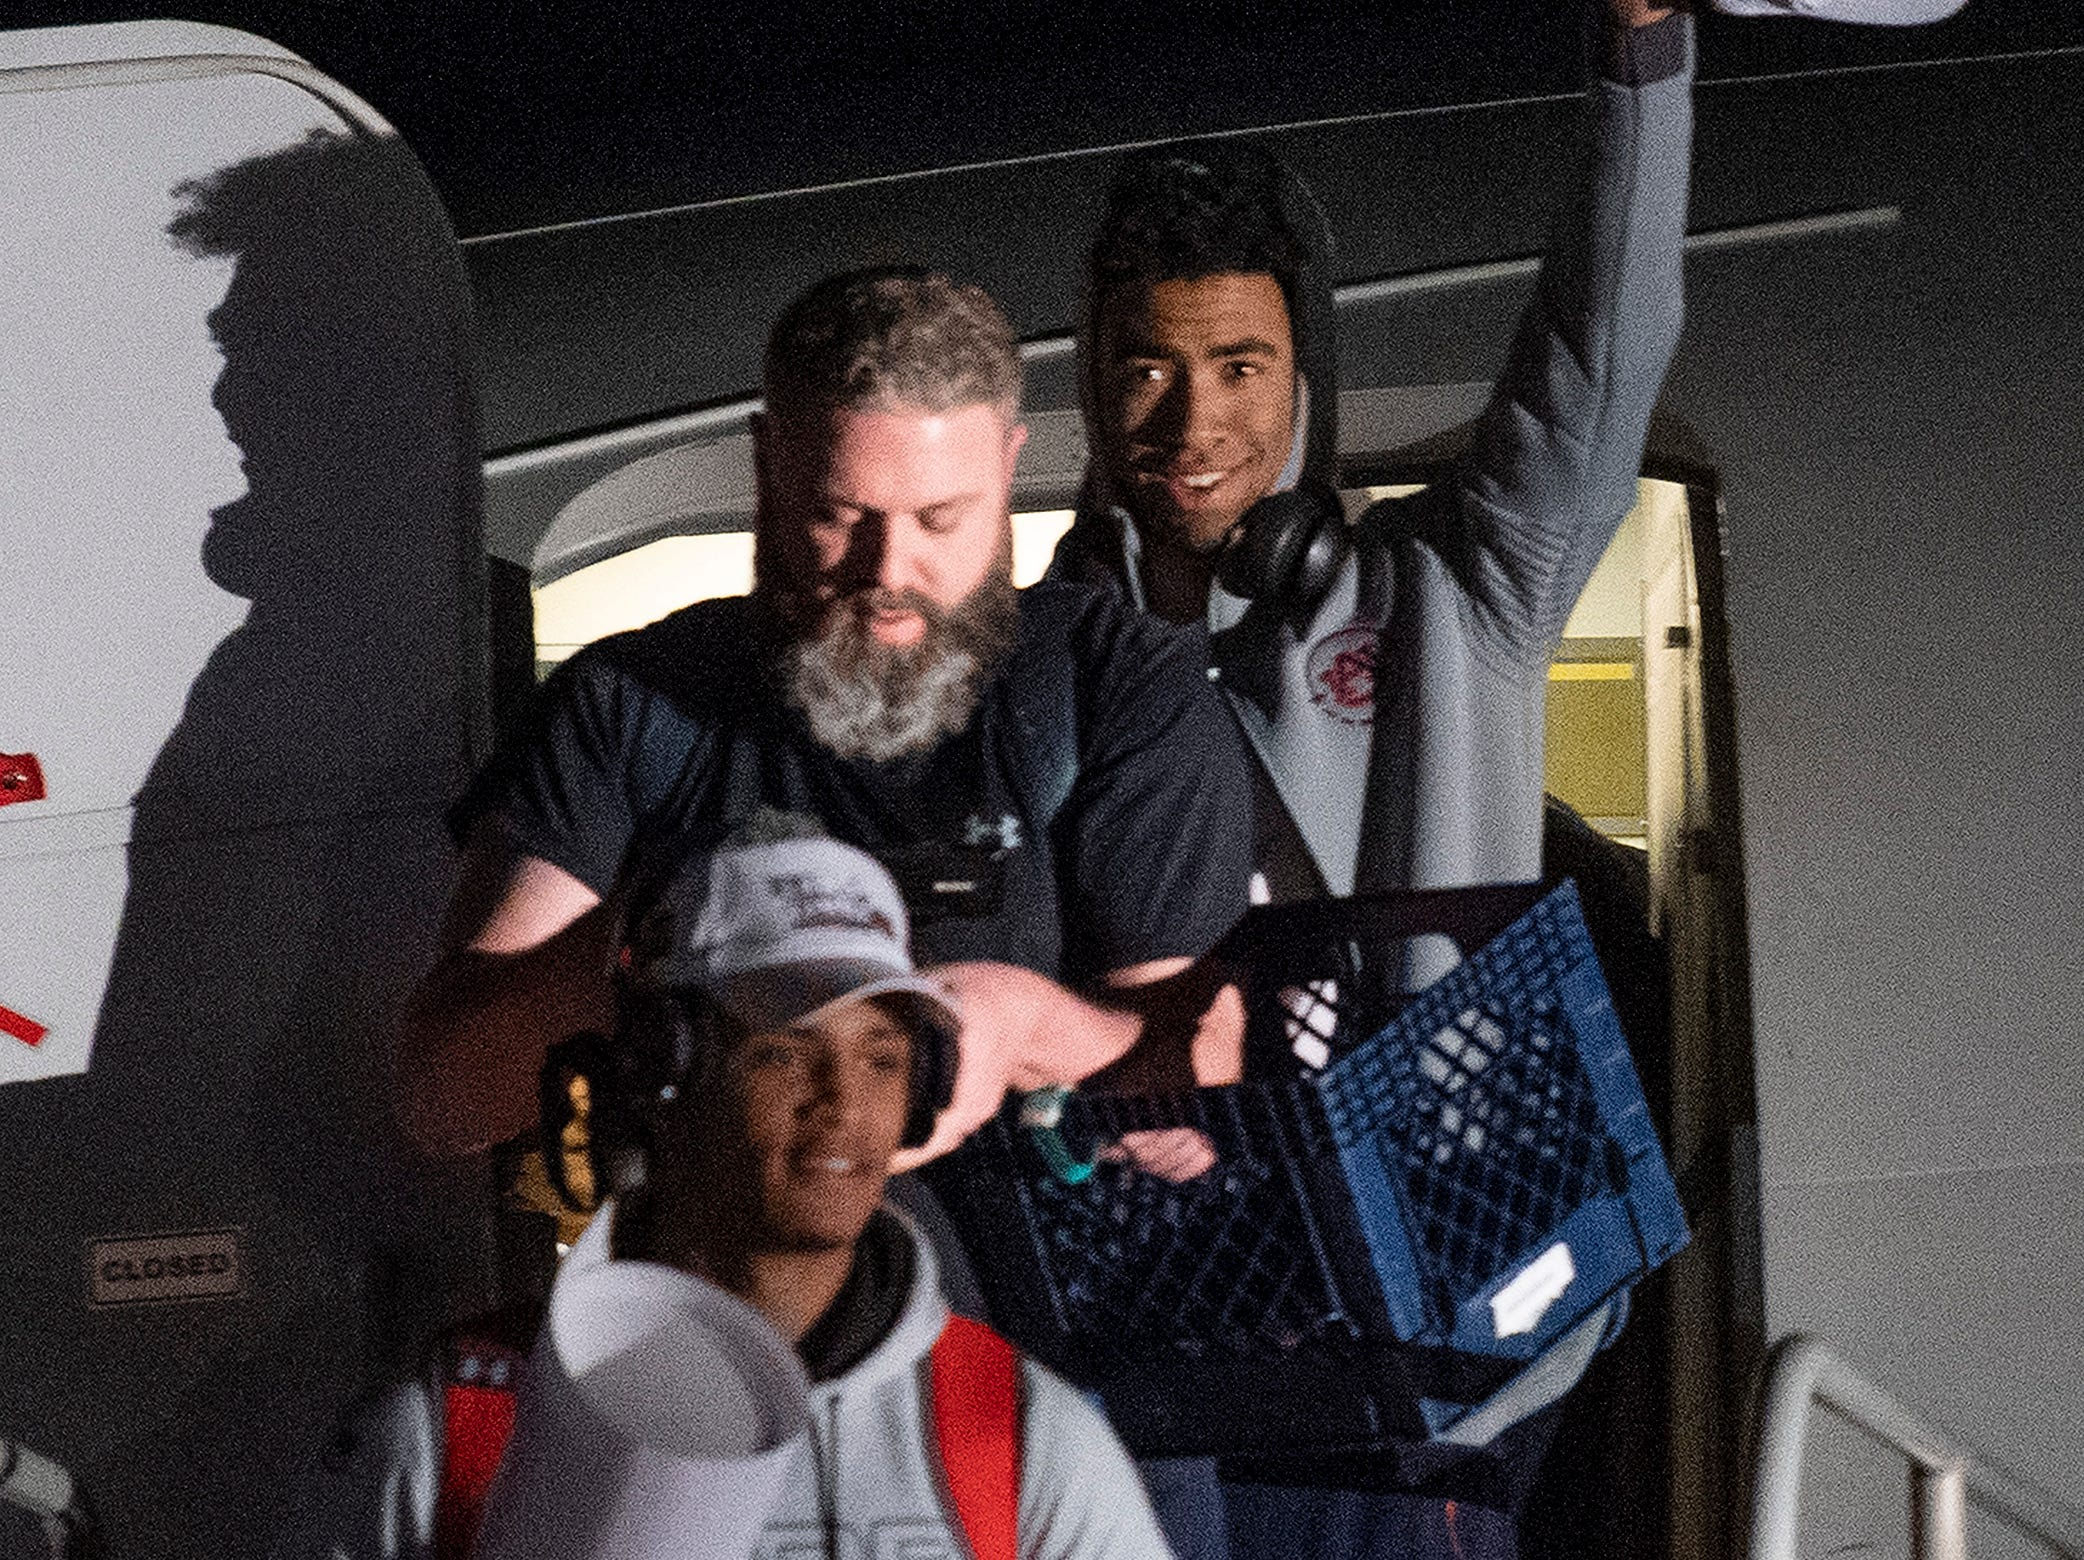 Players wave as the Auburn men's basketball team arrives at the Montgomery, Ala., airport on Sunday evening March 31, 2019 after defeating Kentucky in Kansas City to advance to the NCAA Basketball Final Four next weekend.